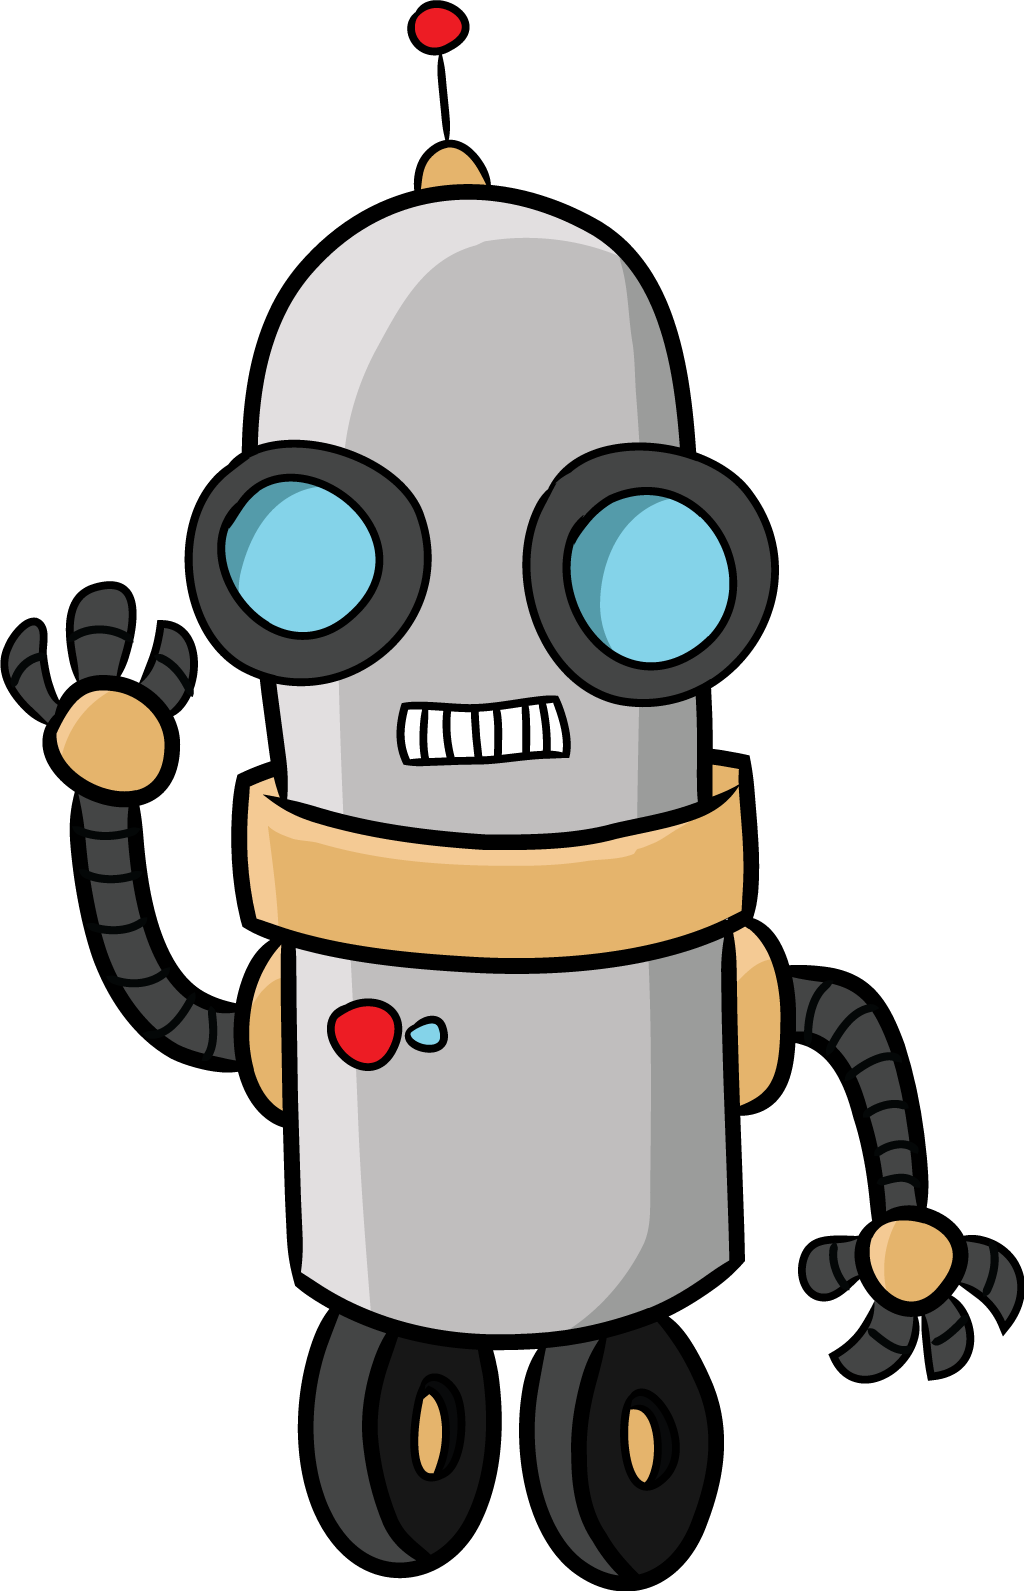 Free to share clipartmonk. Clipart mouse robot